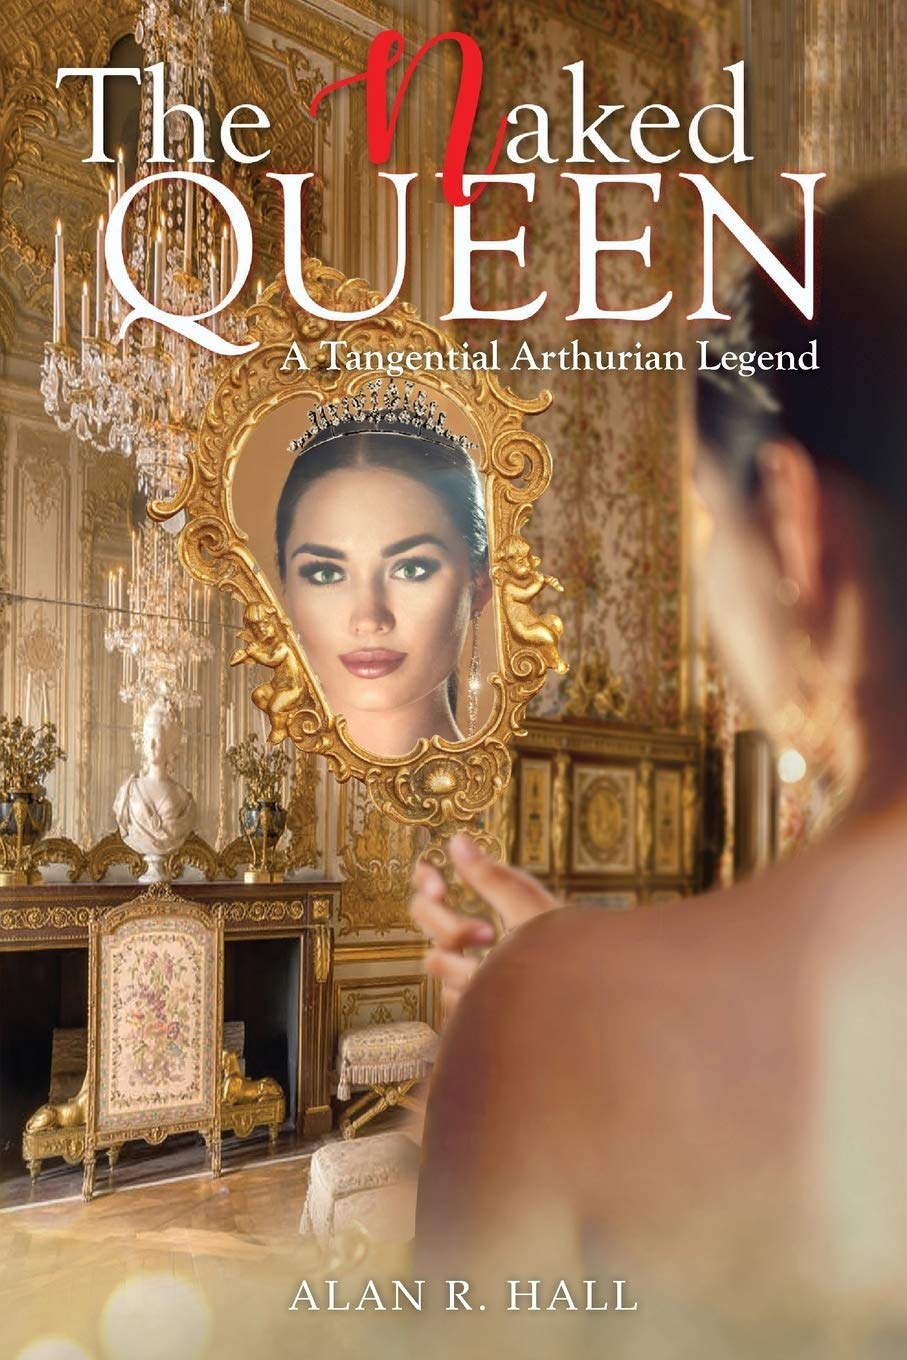 Getting to Know The Naked Queen and Her Legend